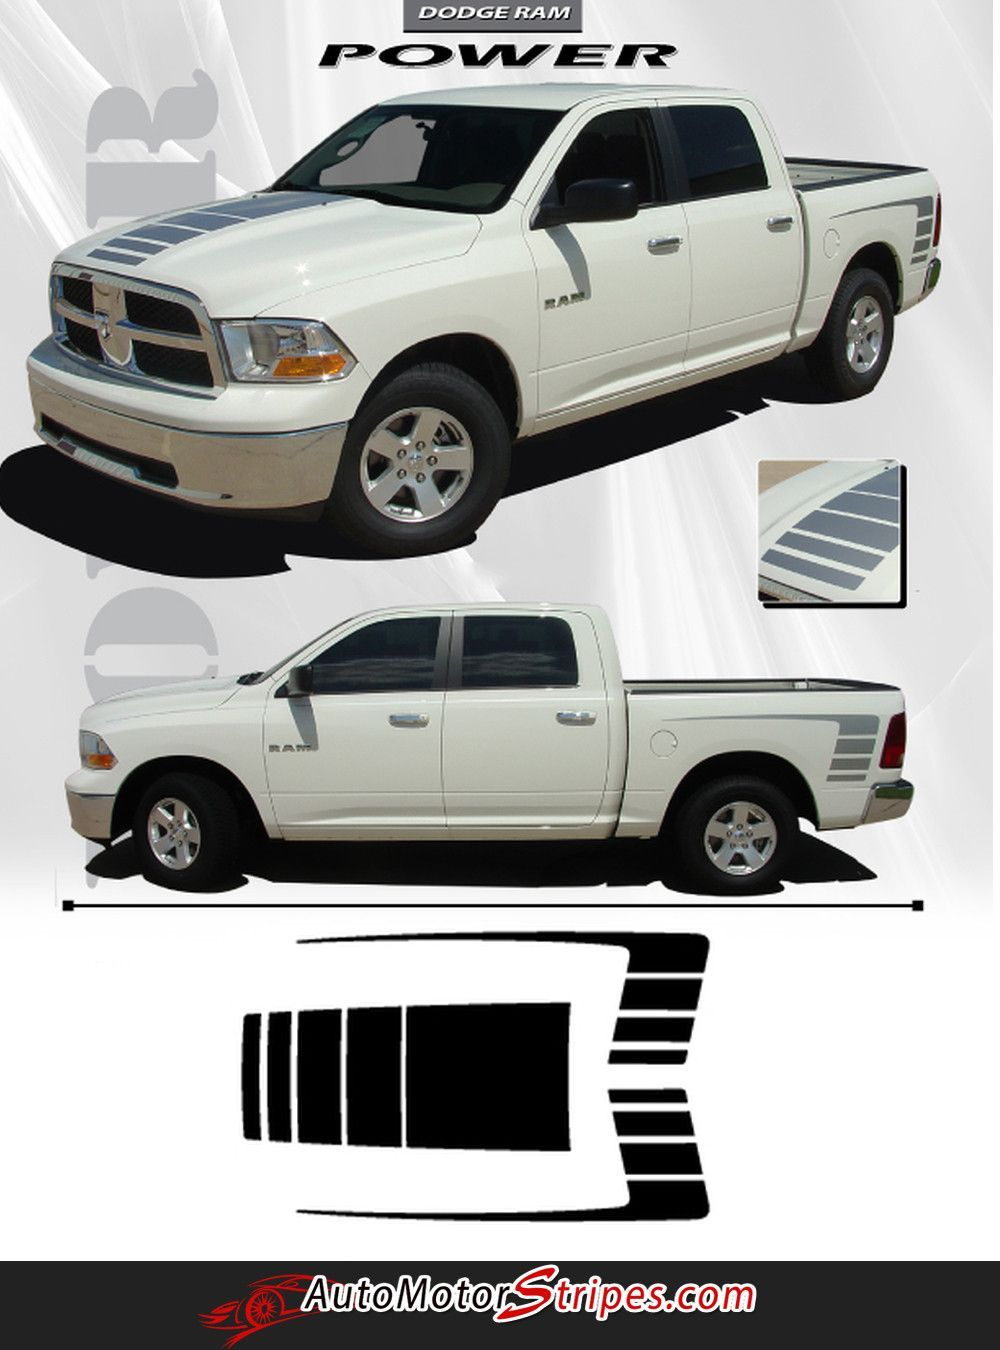 Dodge Ram Power Truck Hood And Rear Side Strobes Truck - Custom truck decals vinyls